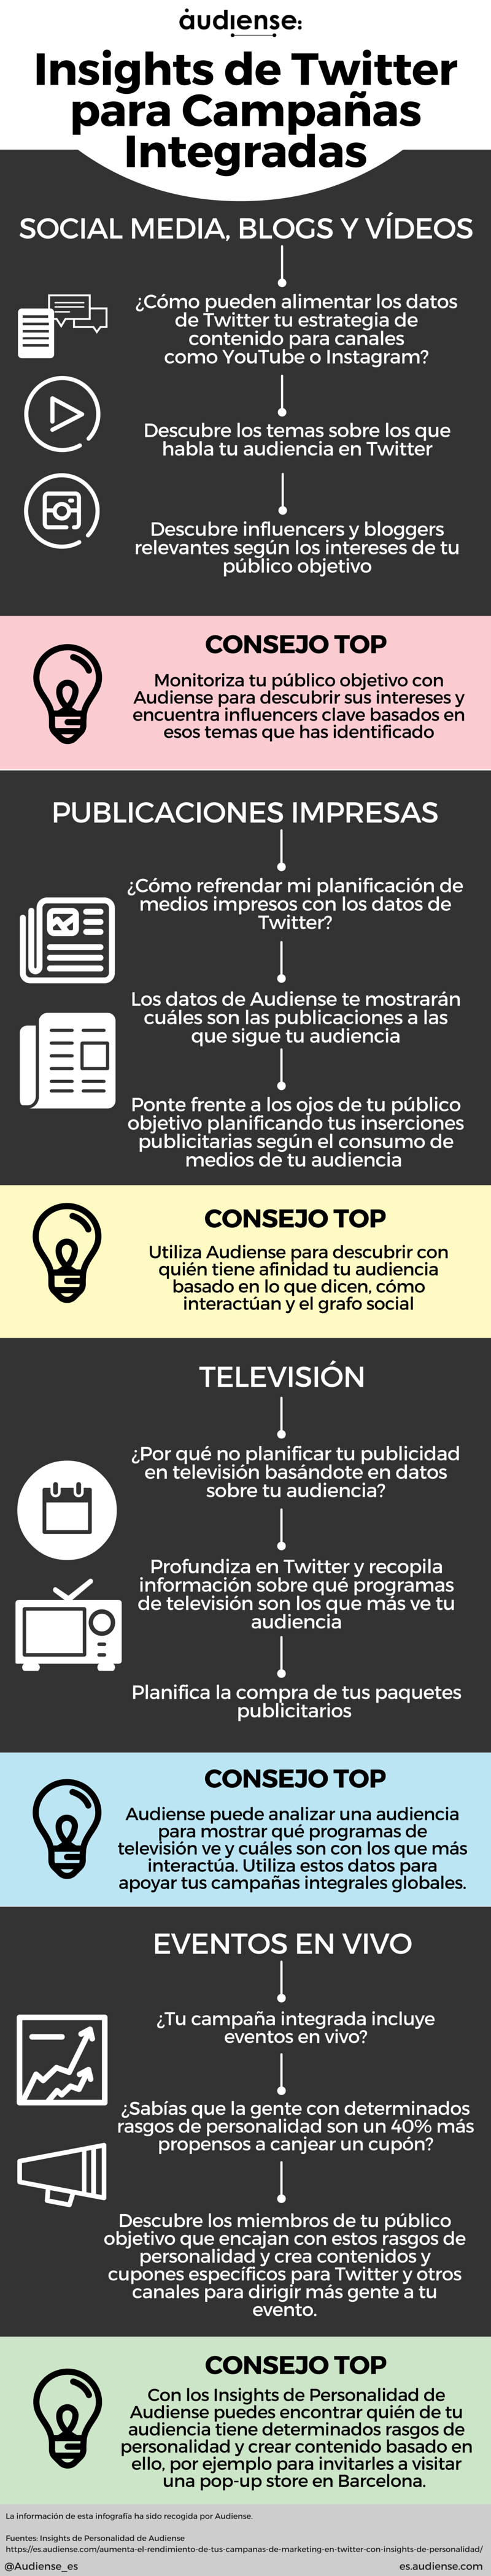 Insights de Twitter en Campañas integradas